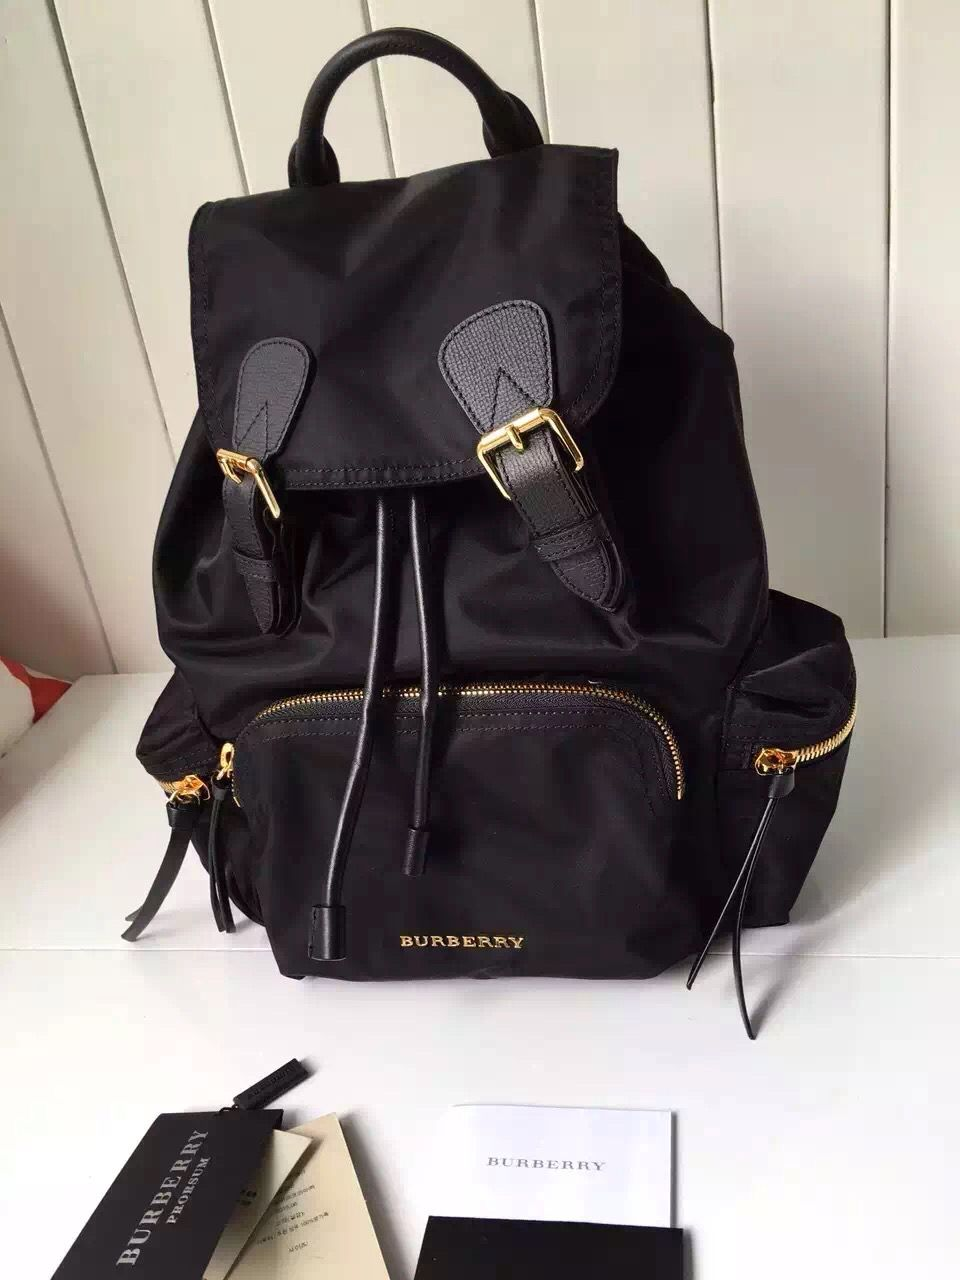 Burberry Medium Rucksack In Technical Nylon And Leather Backpack Black c39faa76188f5